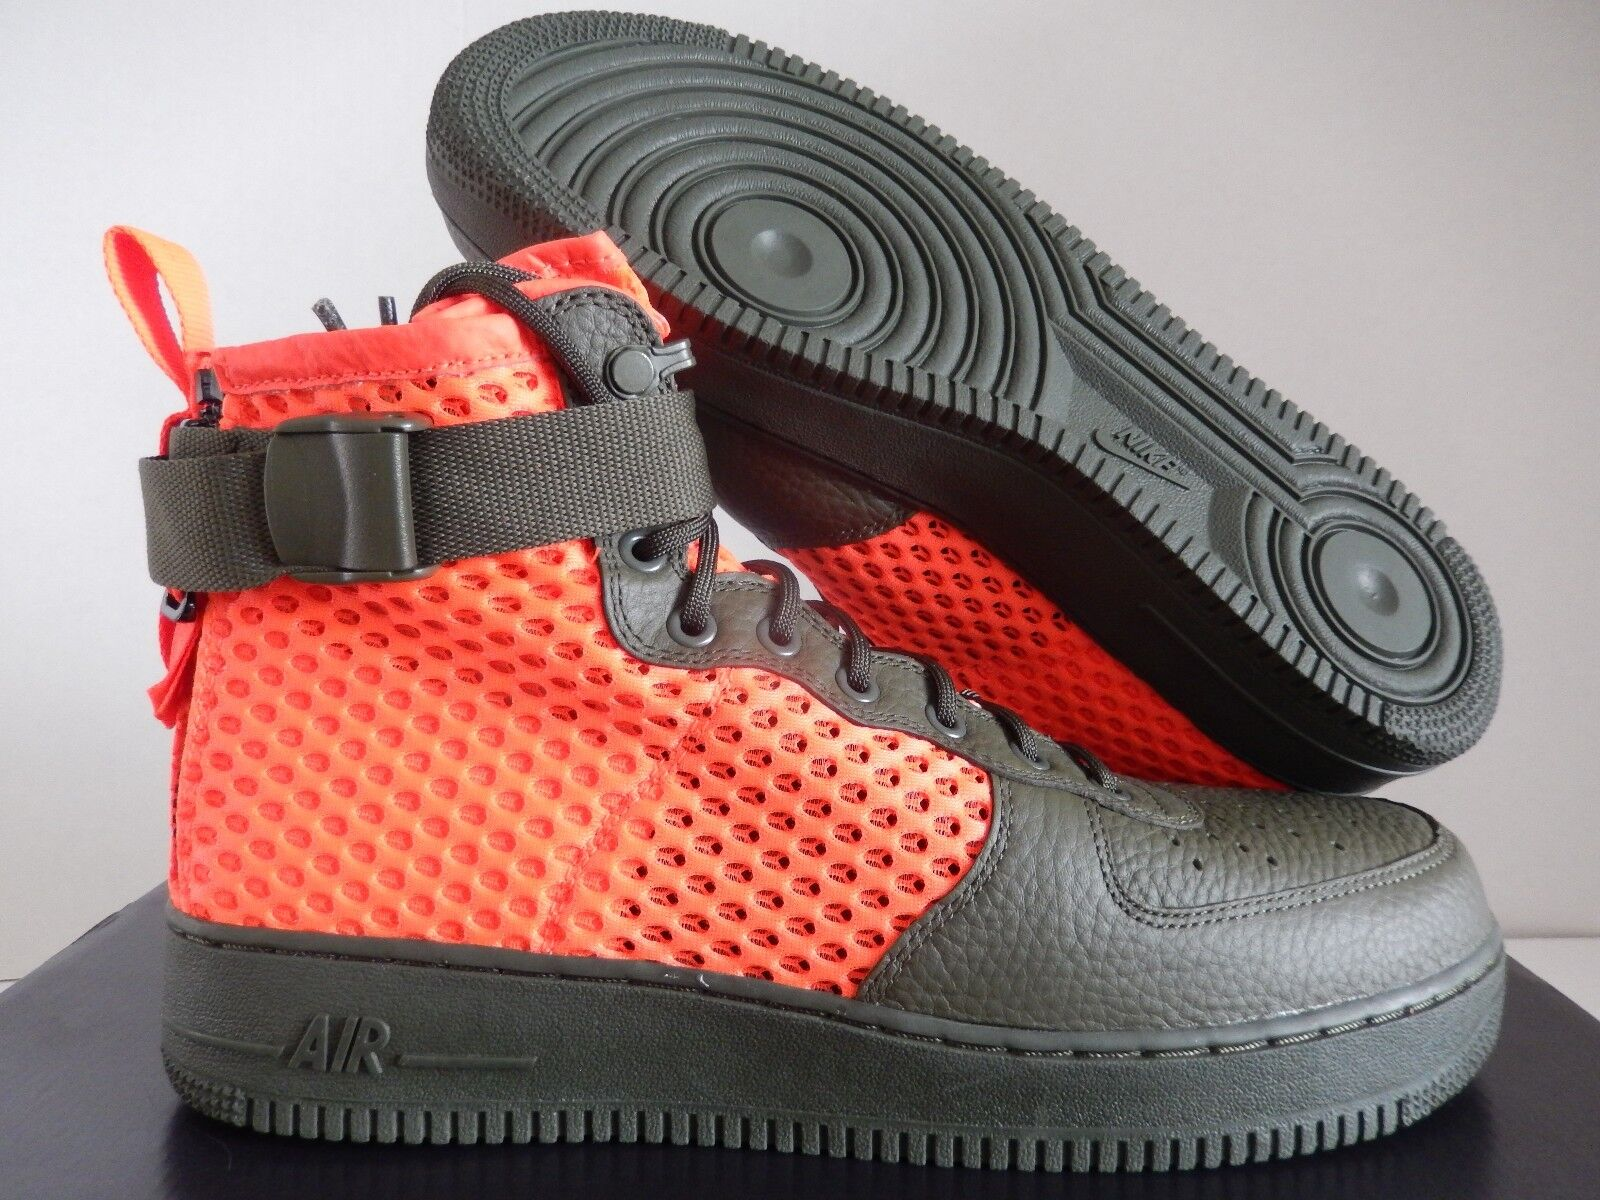 NIKE AIR FORCE 1 SF AF1 MID QS CARGO-CRIMSON  SPECIAL FIELD  SZ 15 [AA7345-300]